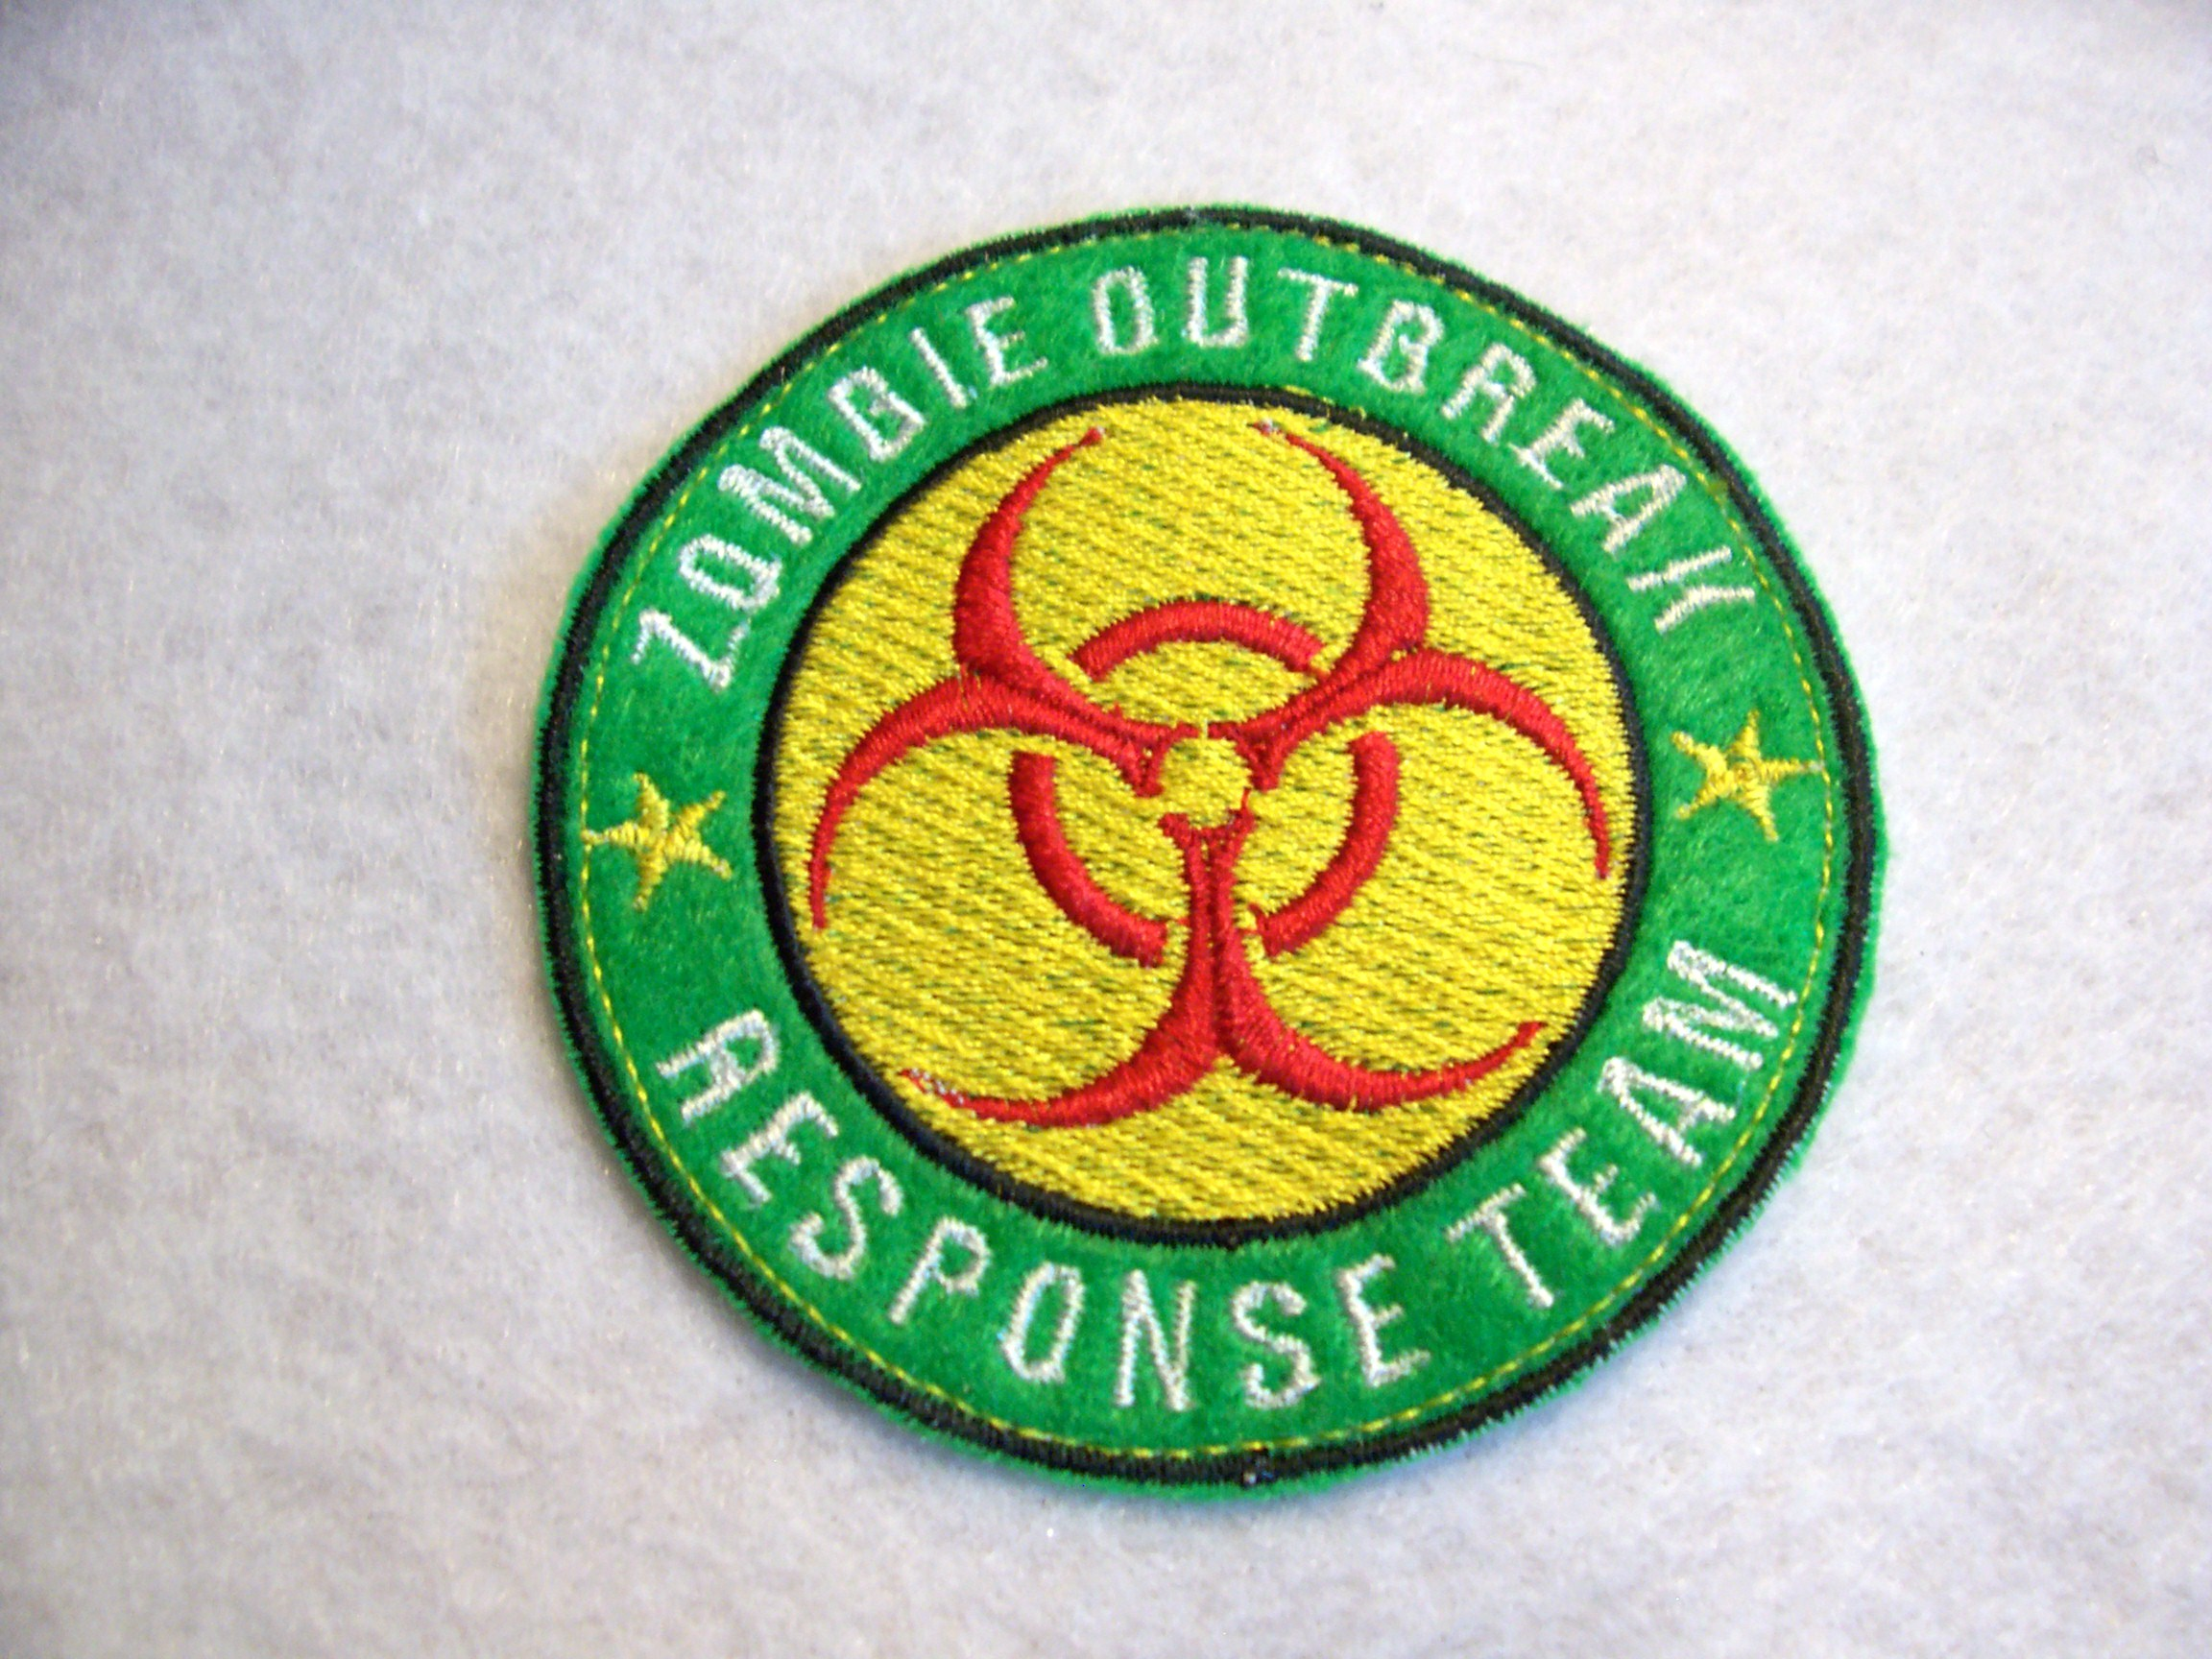 embroidered_zombie_outbreak_response_team_iron_sew_on_patch_badge_zombie_patches_3.jpg